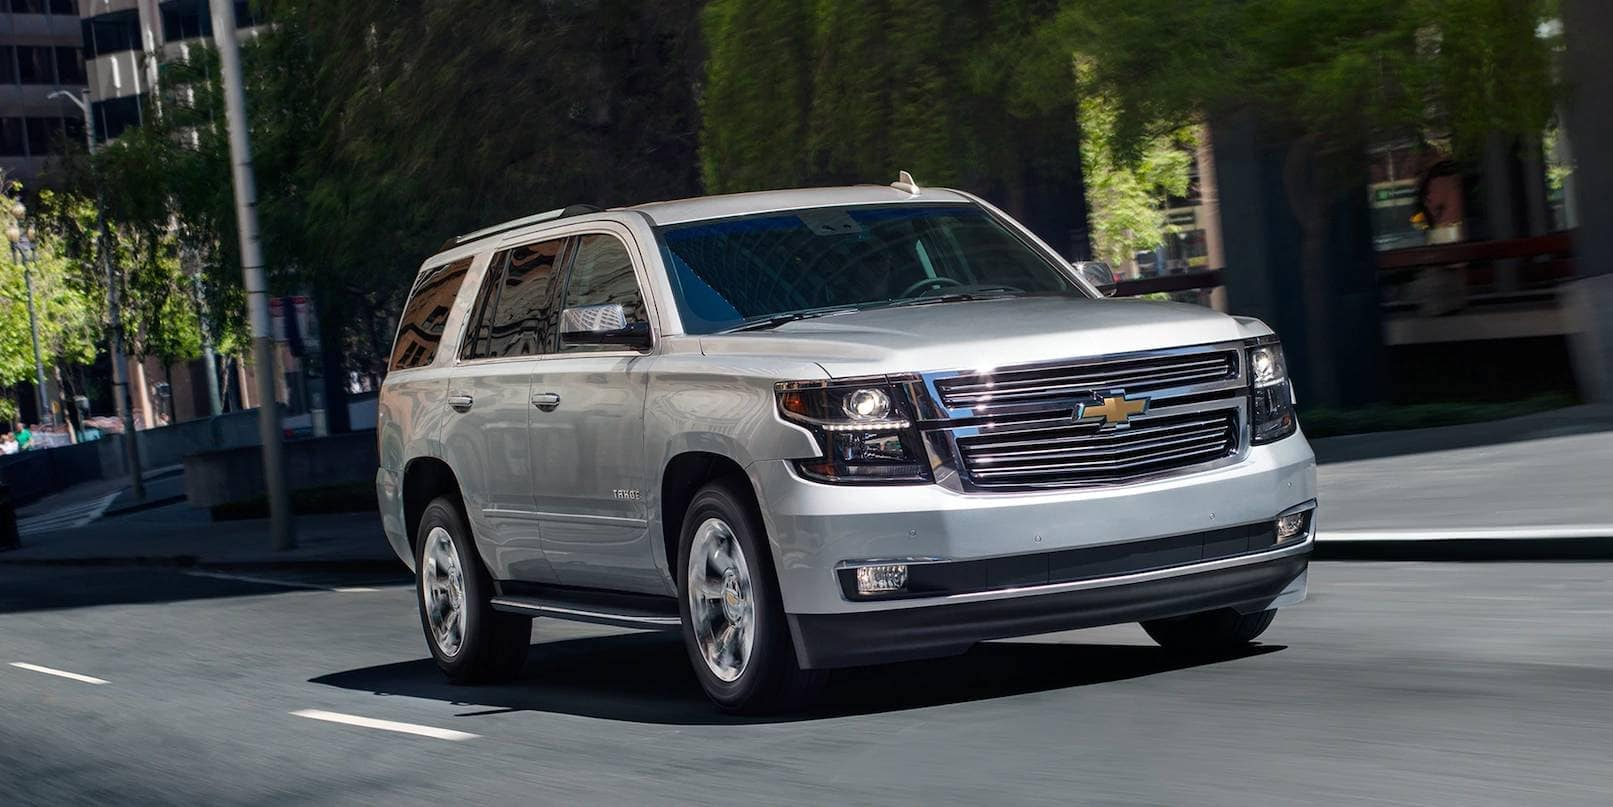 2019 Chevrolet Tahoe silver